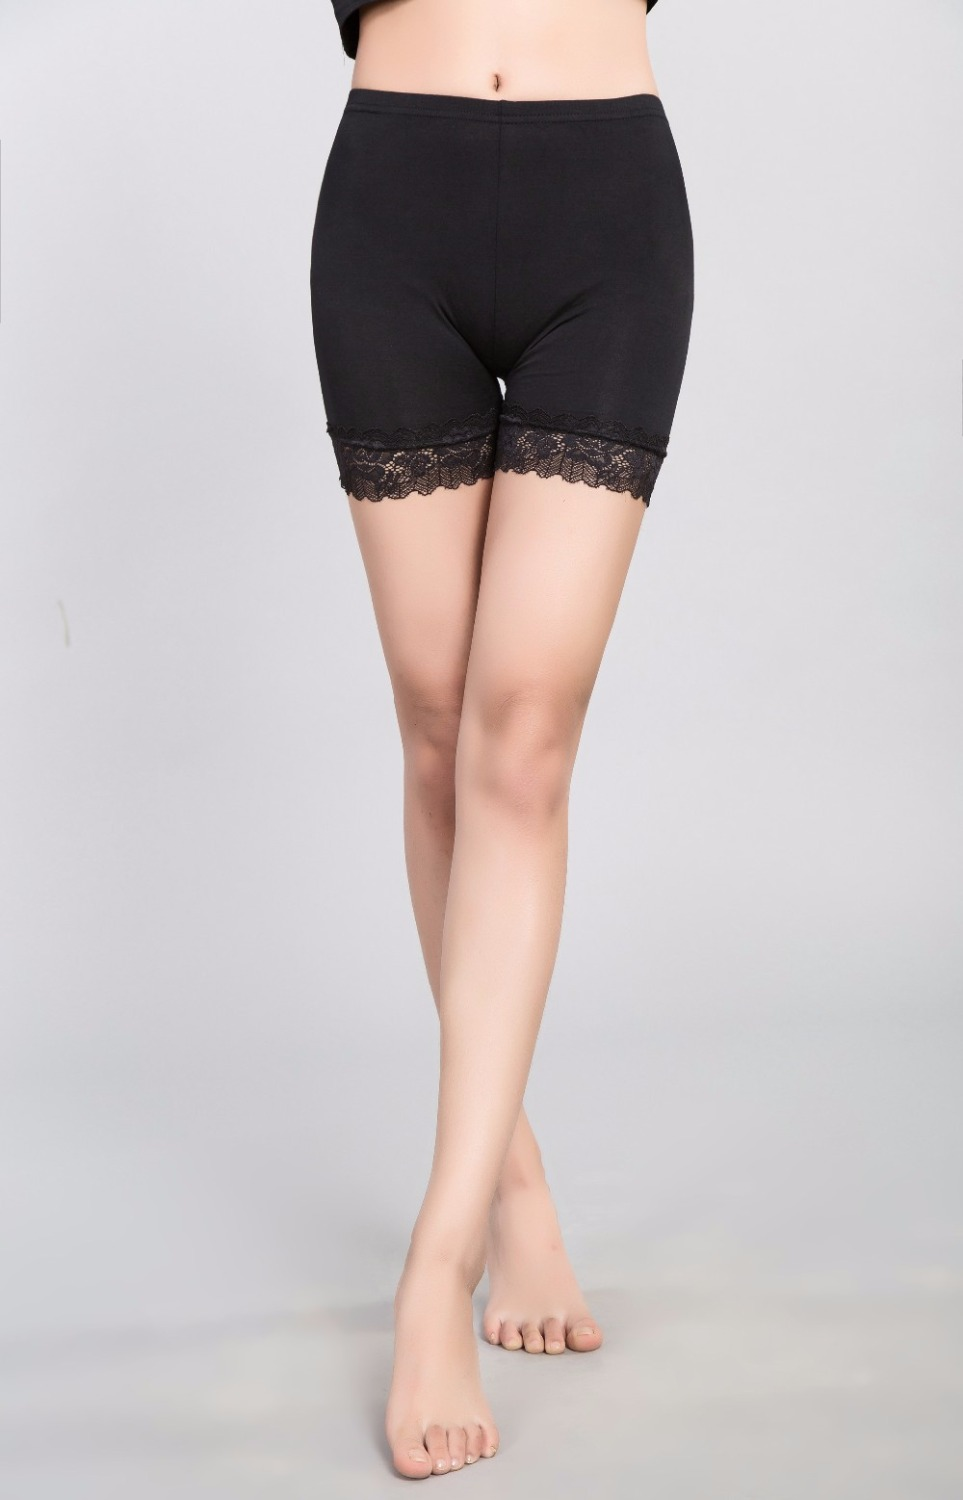 Good quality cotton boxer shorts for women safety pants panties free shipping